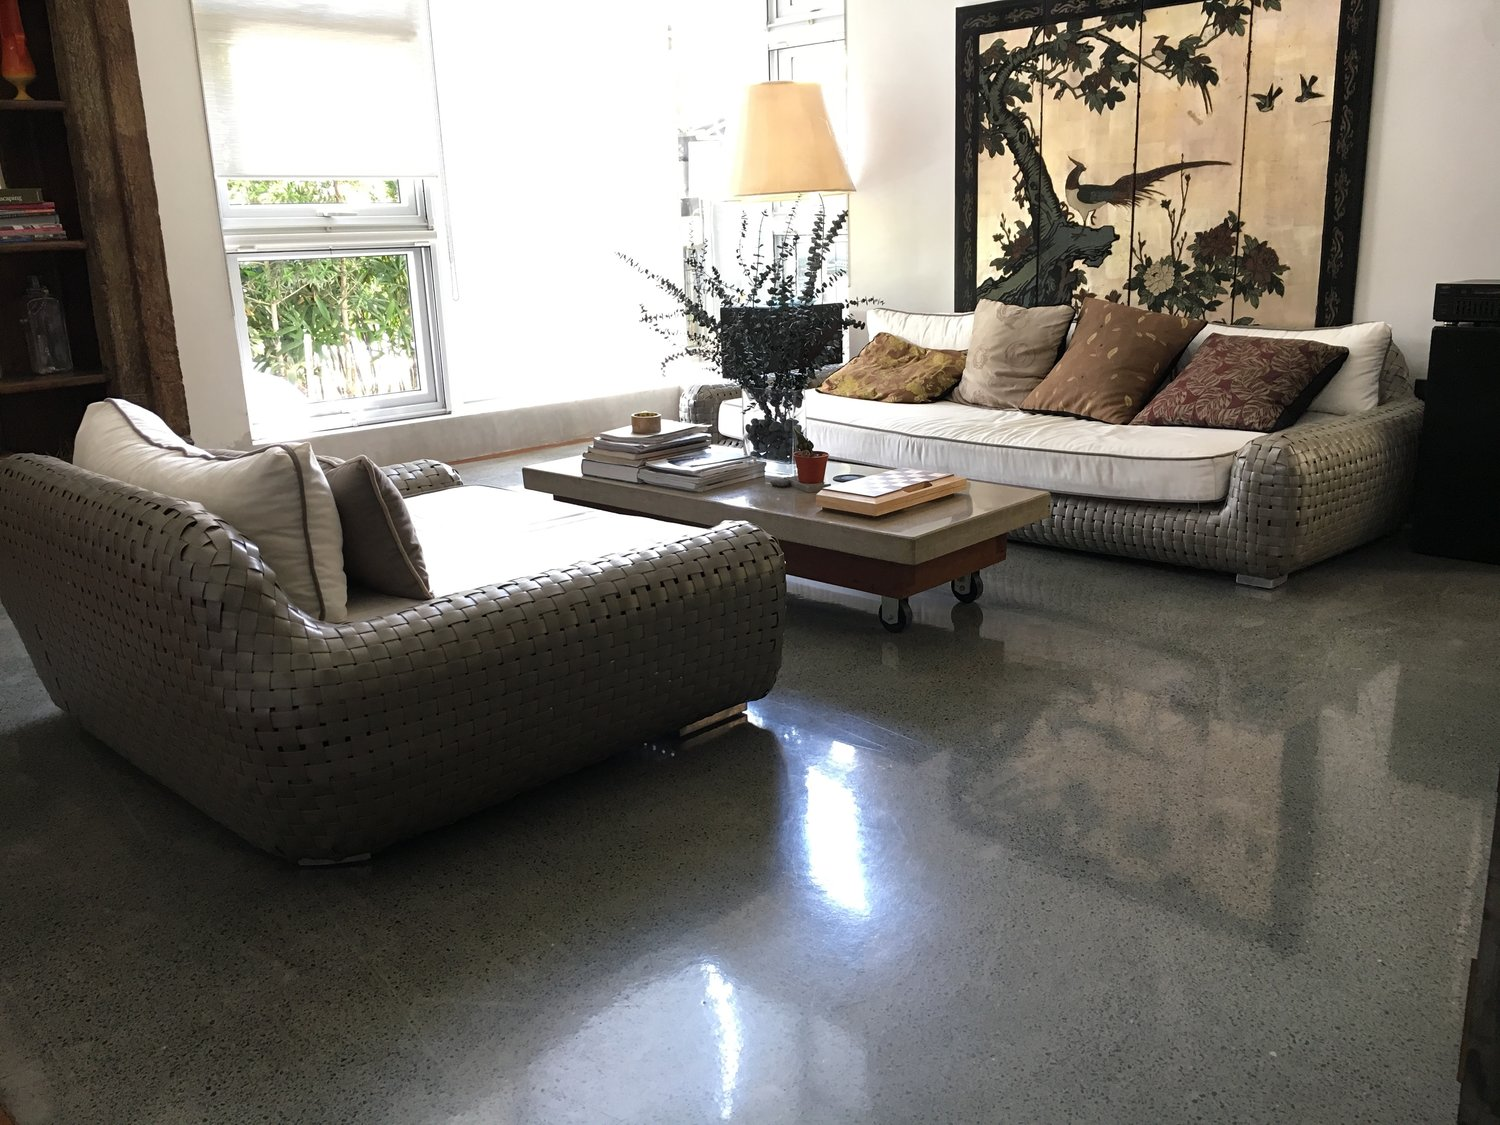 Polished concrete-Broward Custom Concrete Solutions-We offer custom concrete solutions including Polished concrete, Stained concrete, Epoxy Floor, Sealed concrete, Stamped concrete, Concrete overlay, Concrete countertops, Concrete summer kitchens, Driveway repairs, Concrete pool water falls, and more